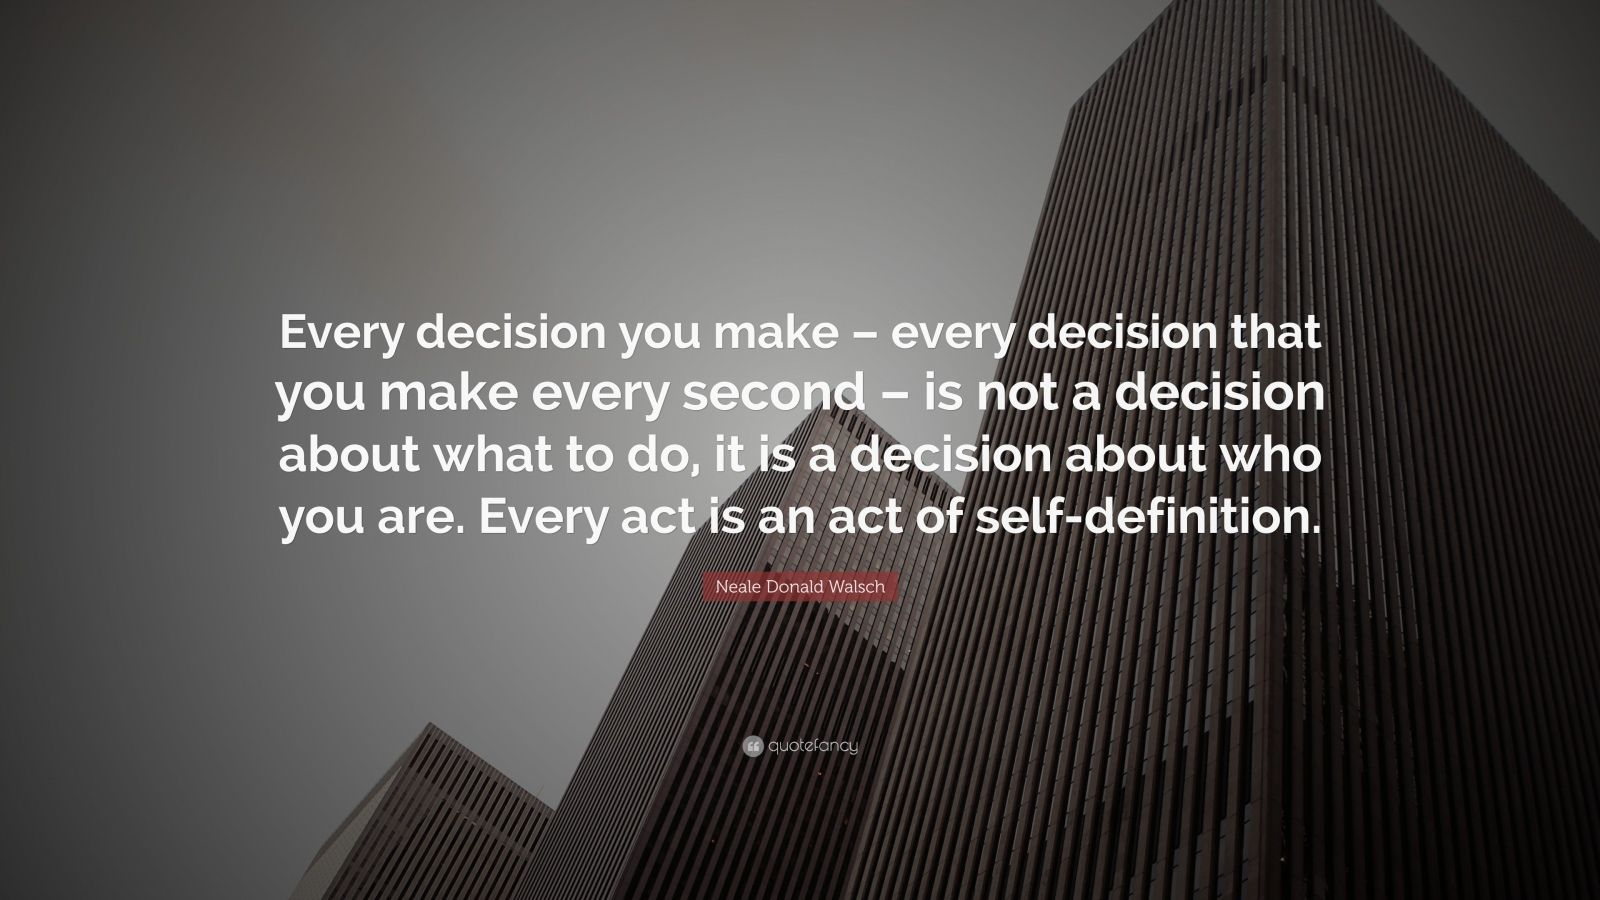 """Neale Donald Walsch Quote: """"Every decision you make – every decision that you make every second – is not a decision about what to do, it is a decision about who you are. Every act is an act of self-definition."""""""